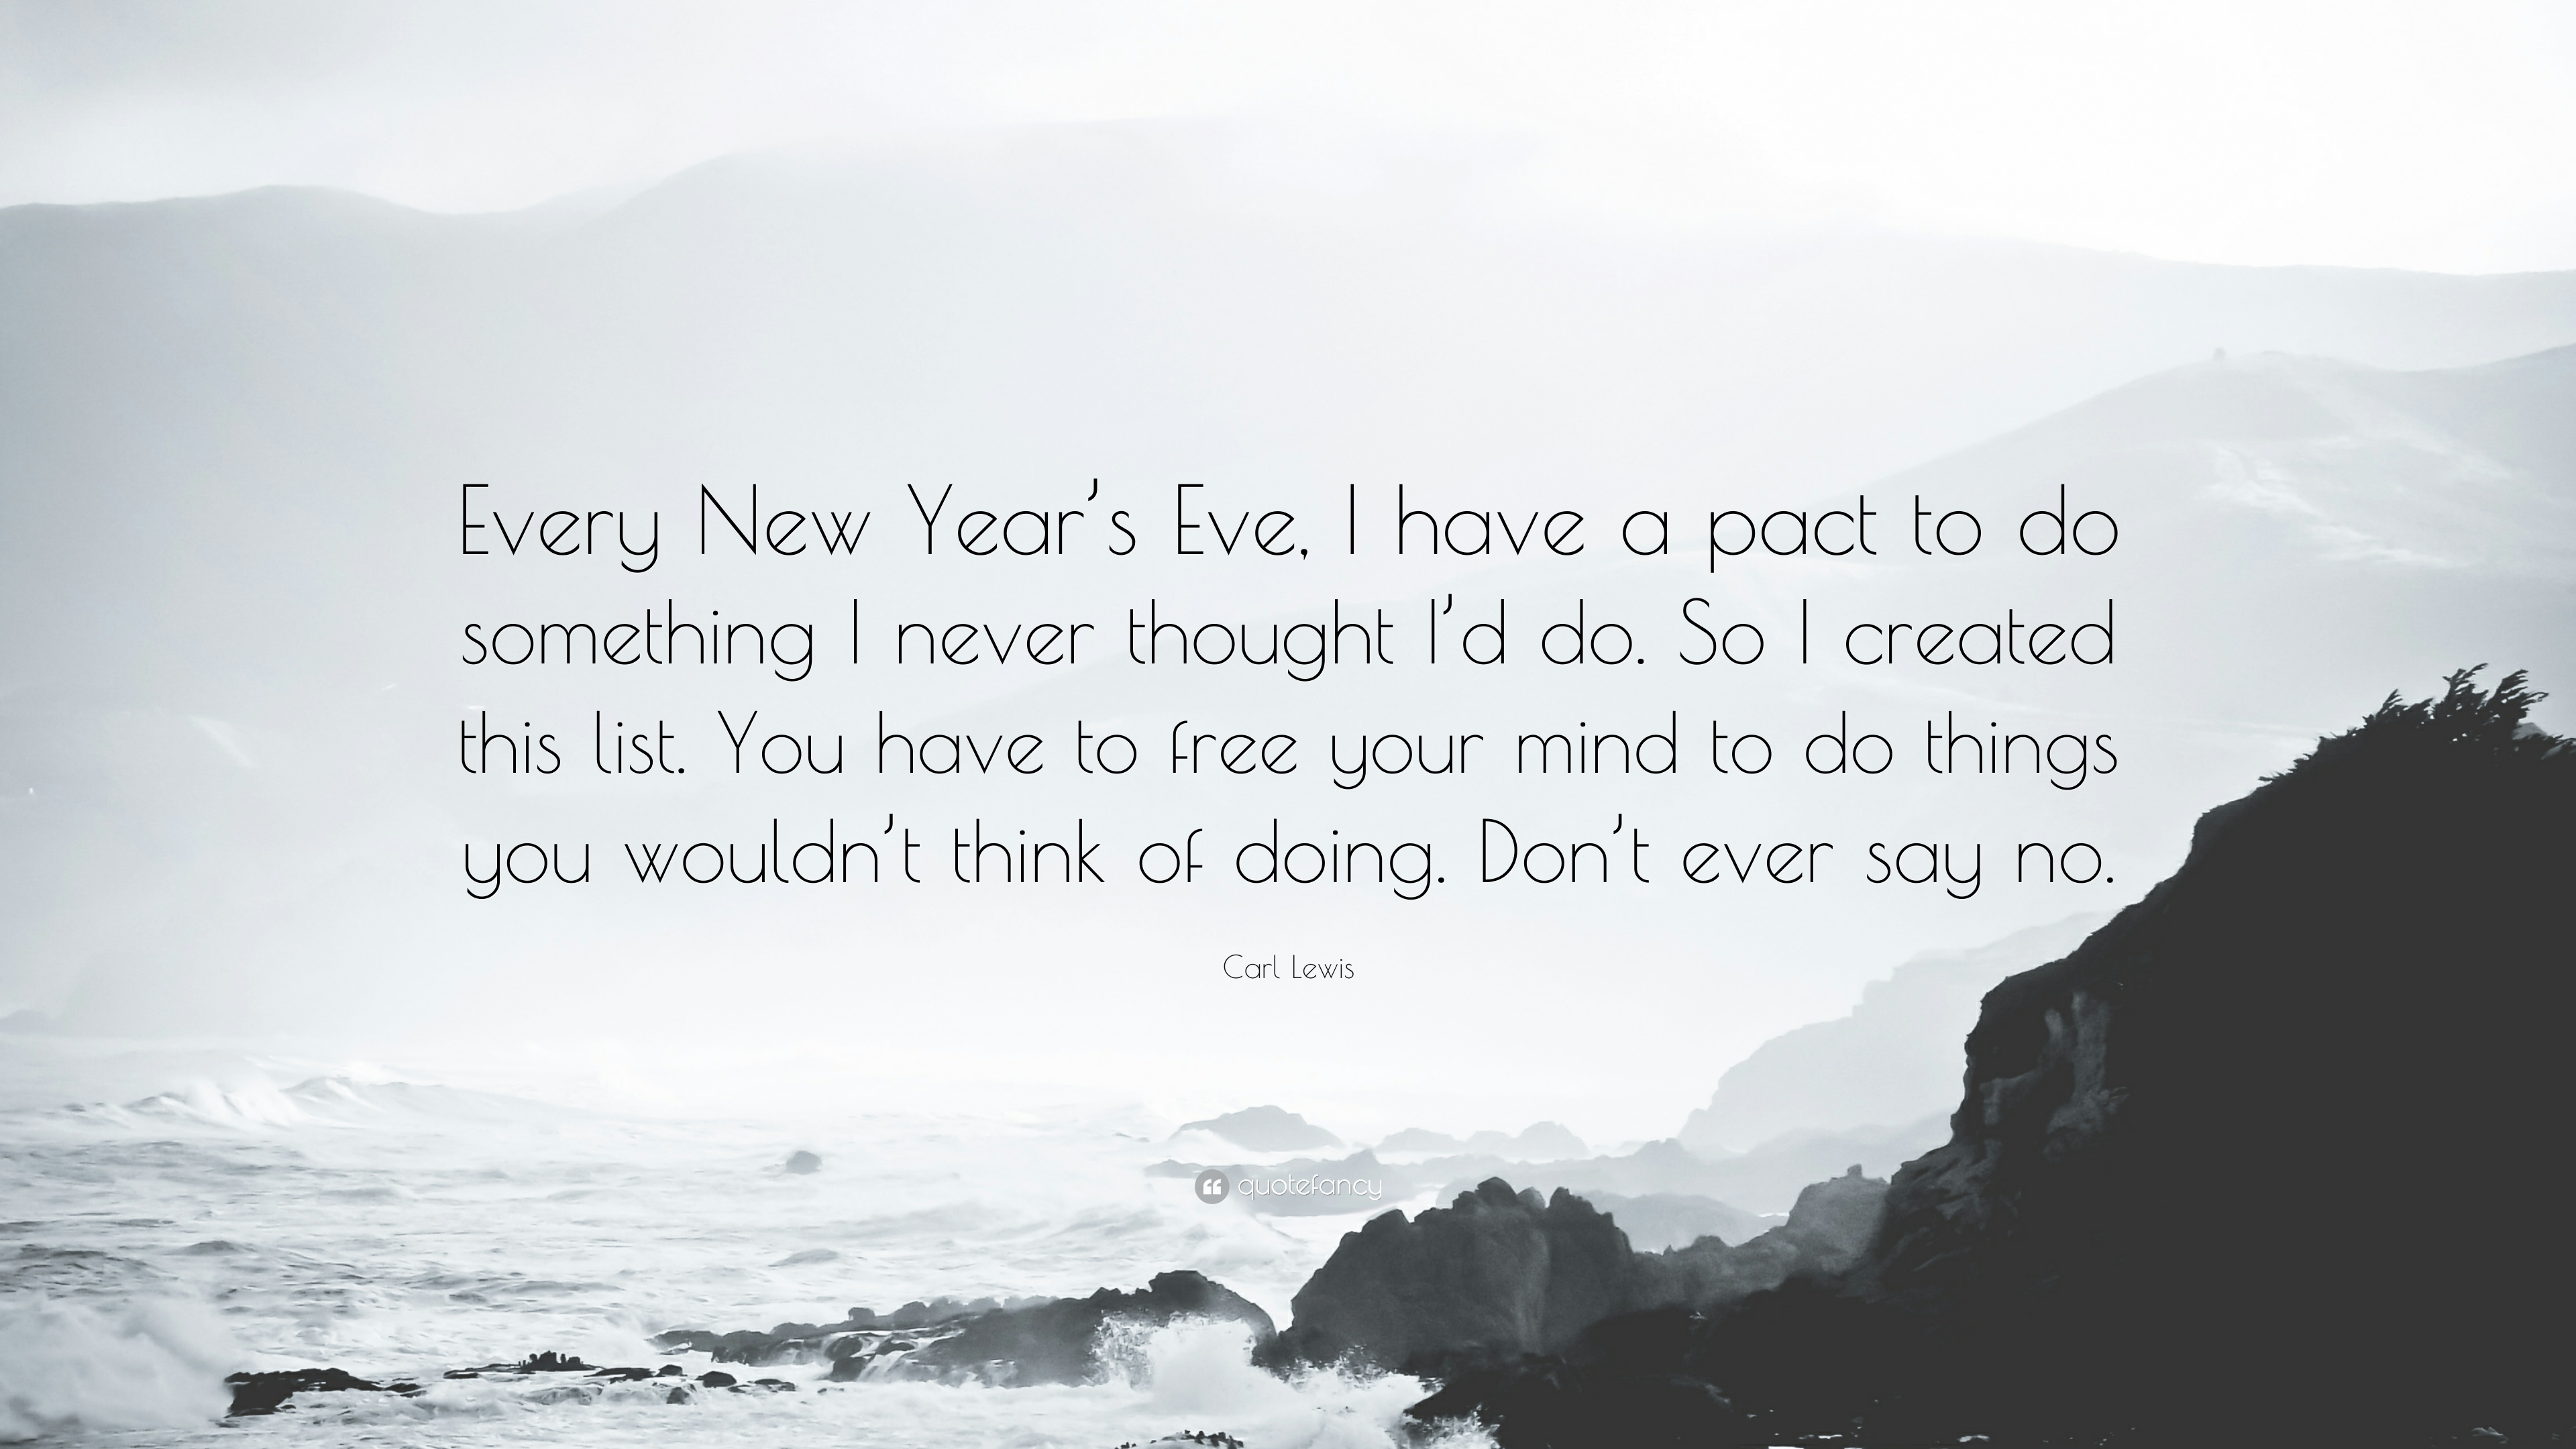 carl lewis quote every new years eve i have a pact to do